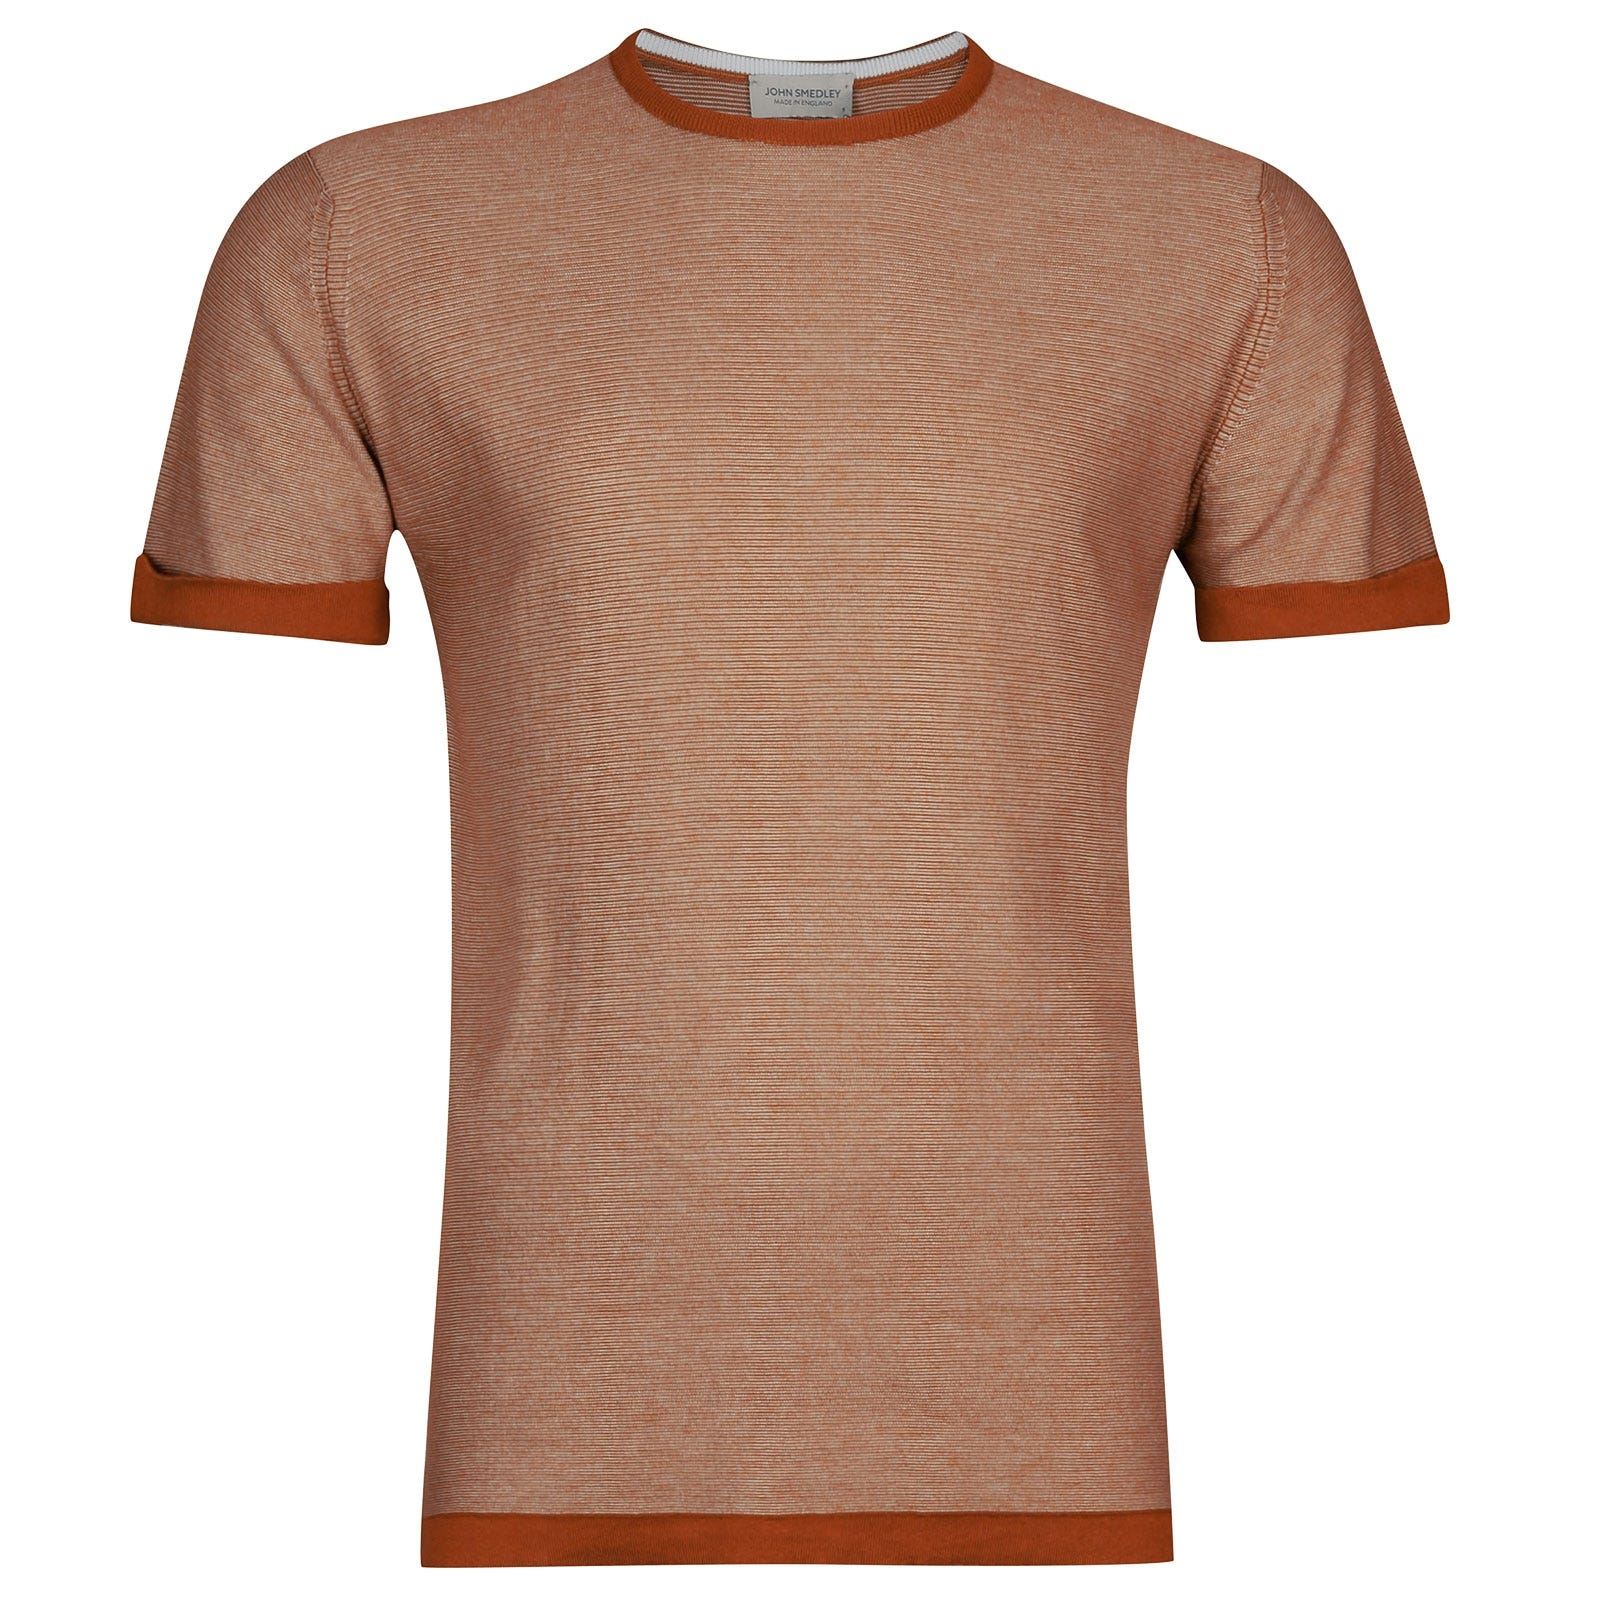 John Smedley benhope Sea Island Cotton T-shirt in Flare Orange/White-S